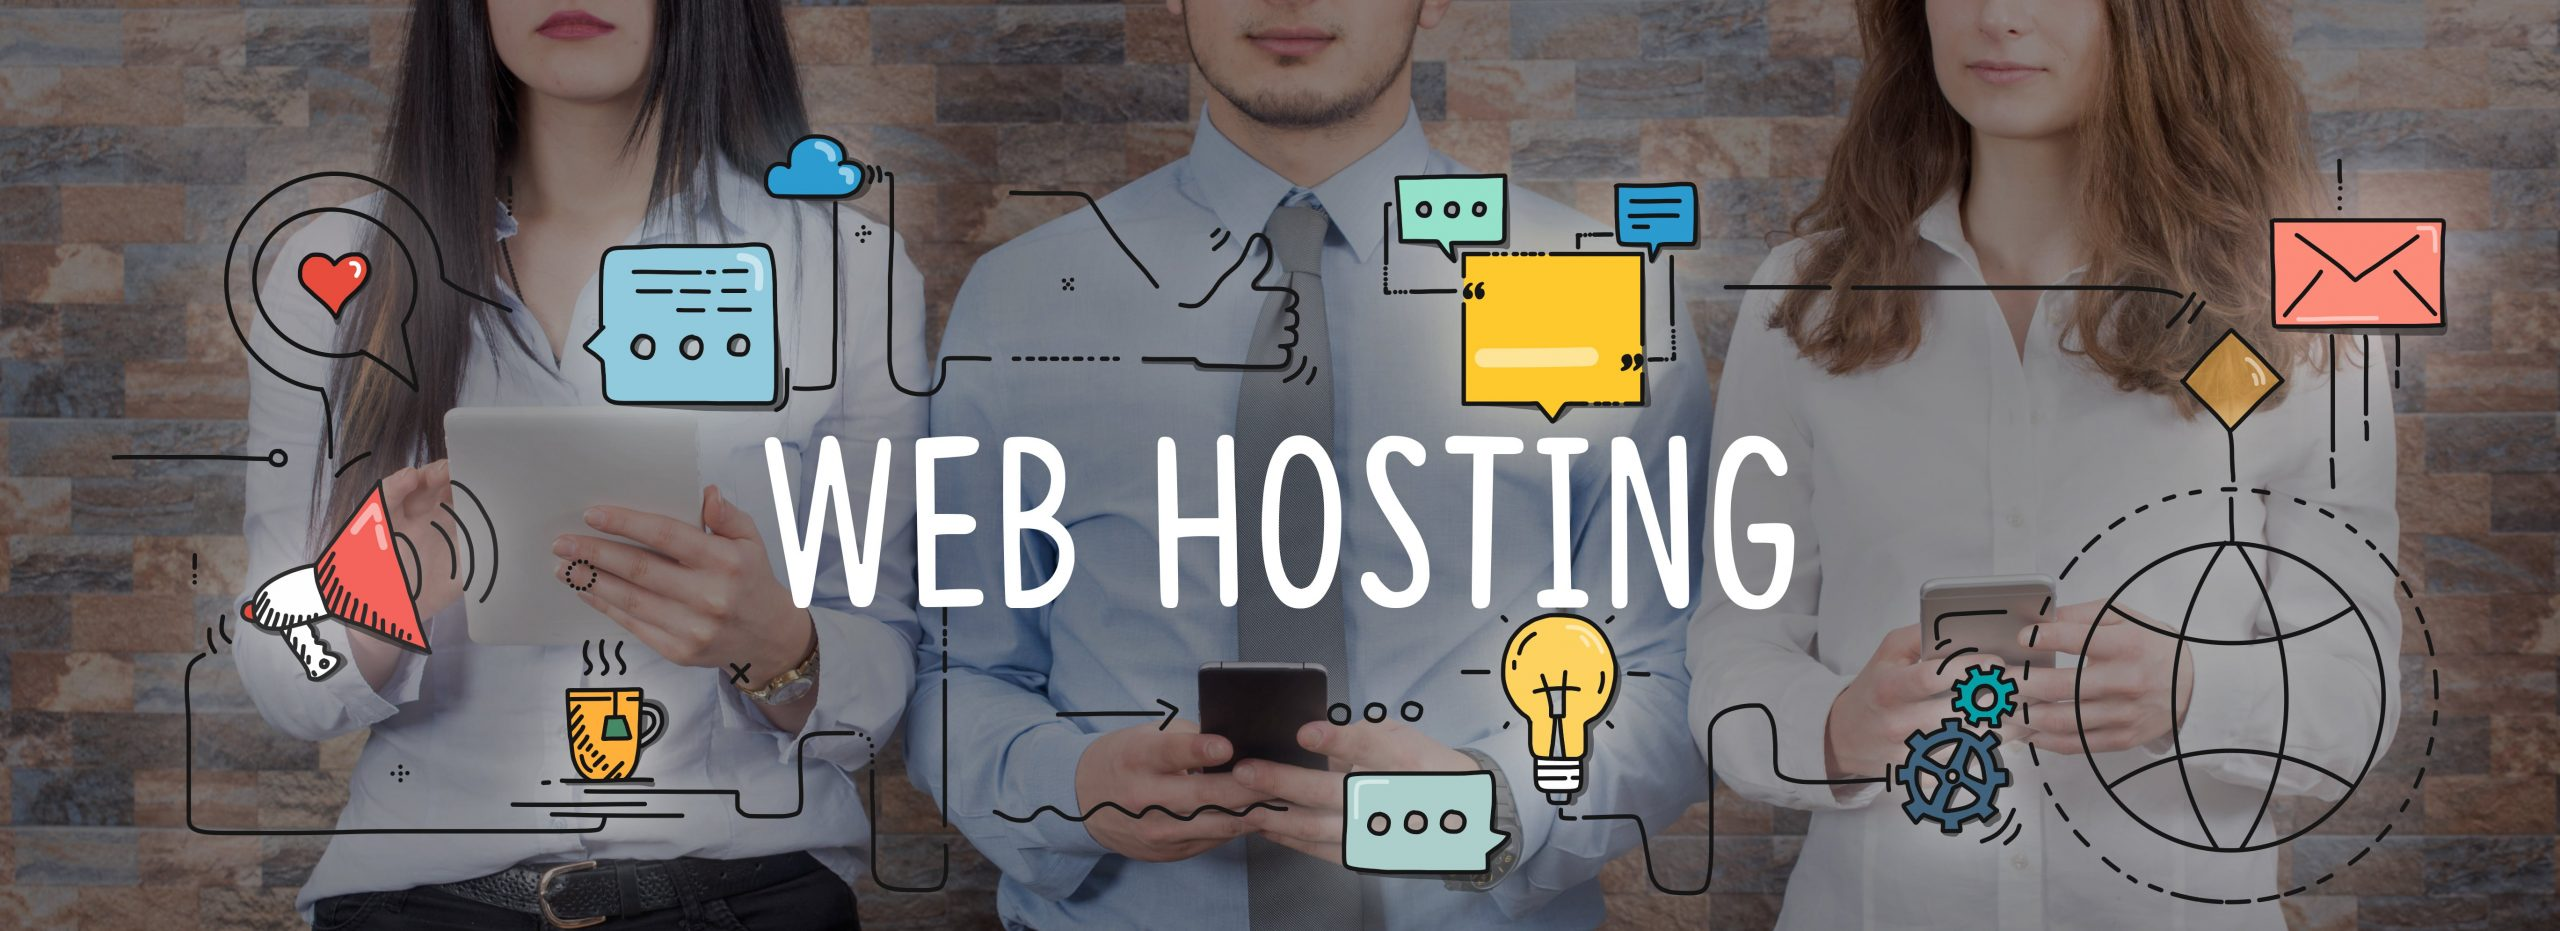 How To Choose The Right Web Host For Your Site